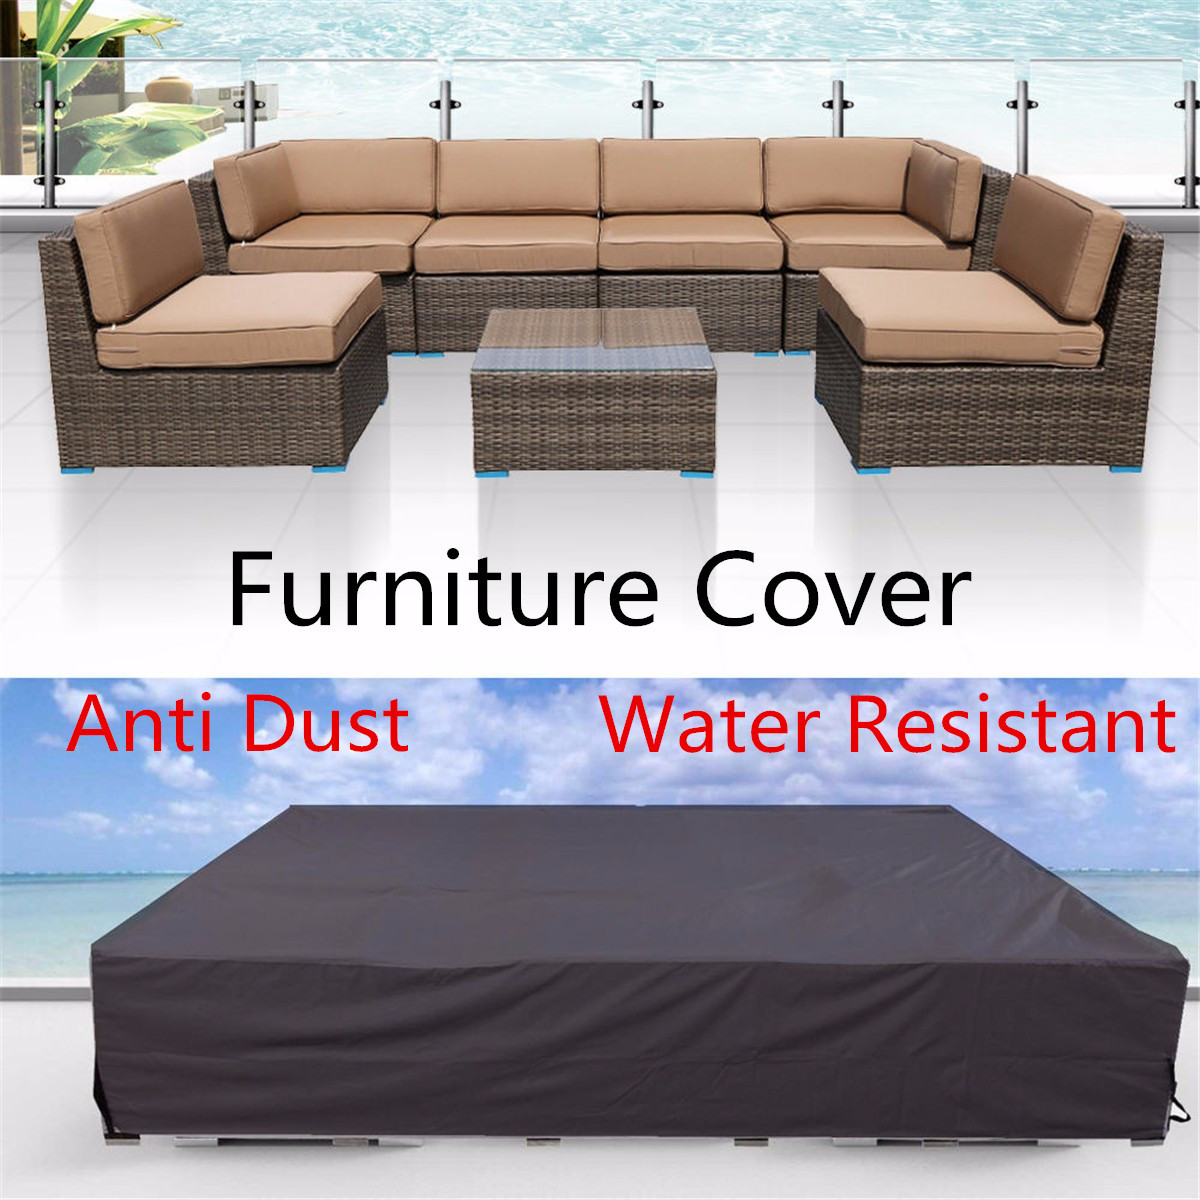 US $12.45 18% OFF|Heavy Outdoor Furniture Cover Waterproof Patio Garden  Wicker Chairs Tables Sofa Couch Cover Rain Snow Dustproof Covers-in ...